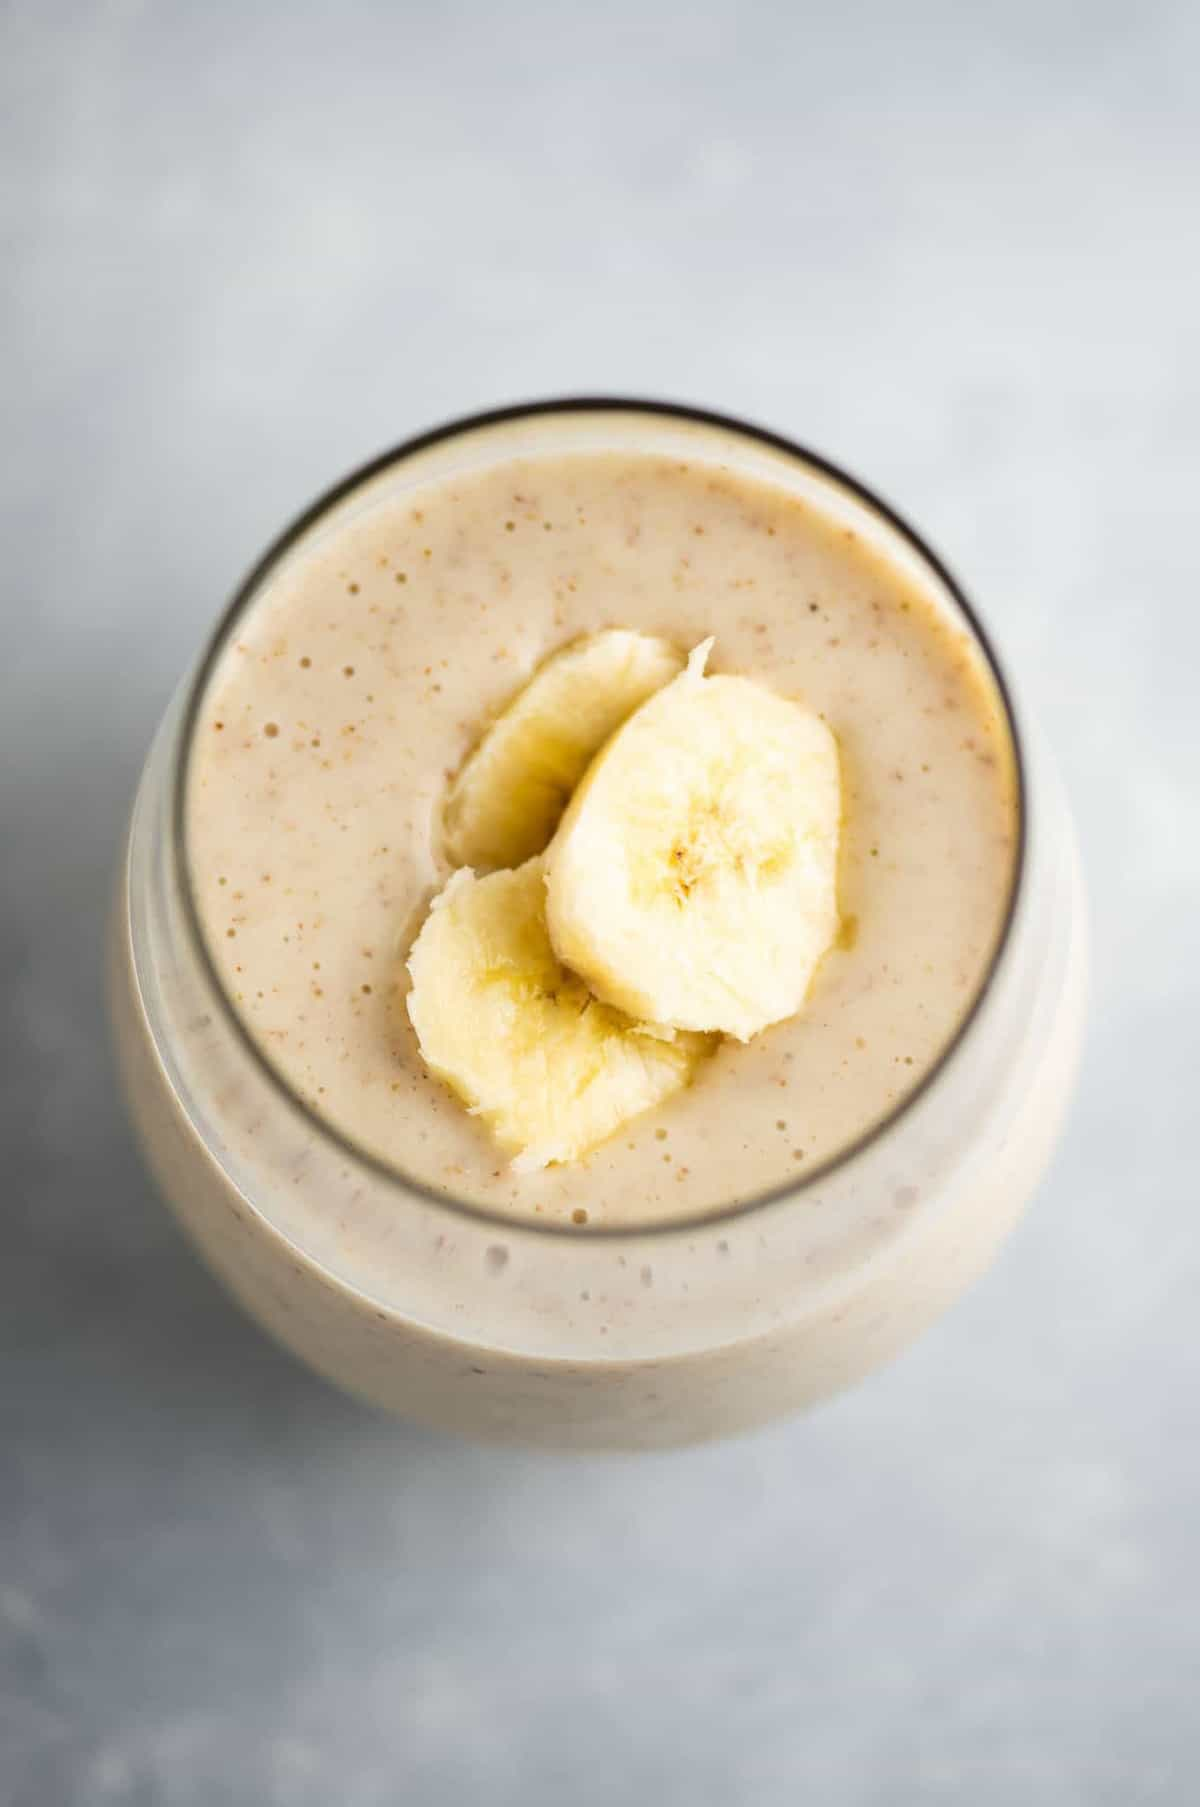 Easy, simple and yummy banana smoothie recipe